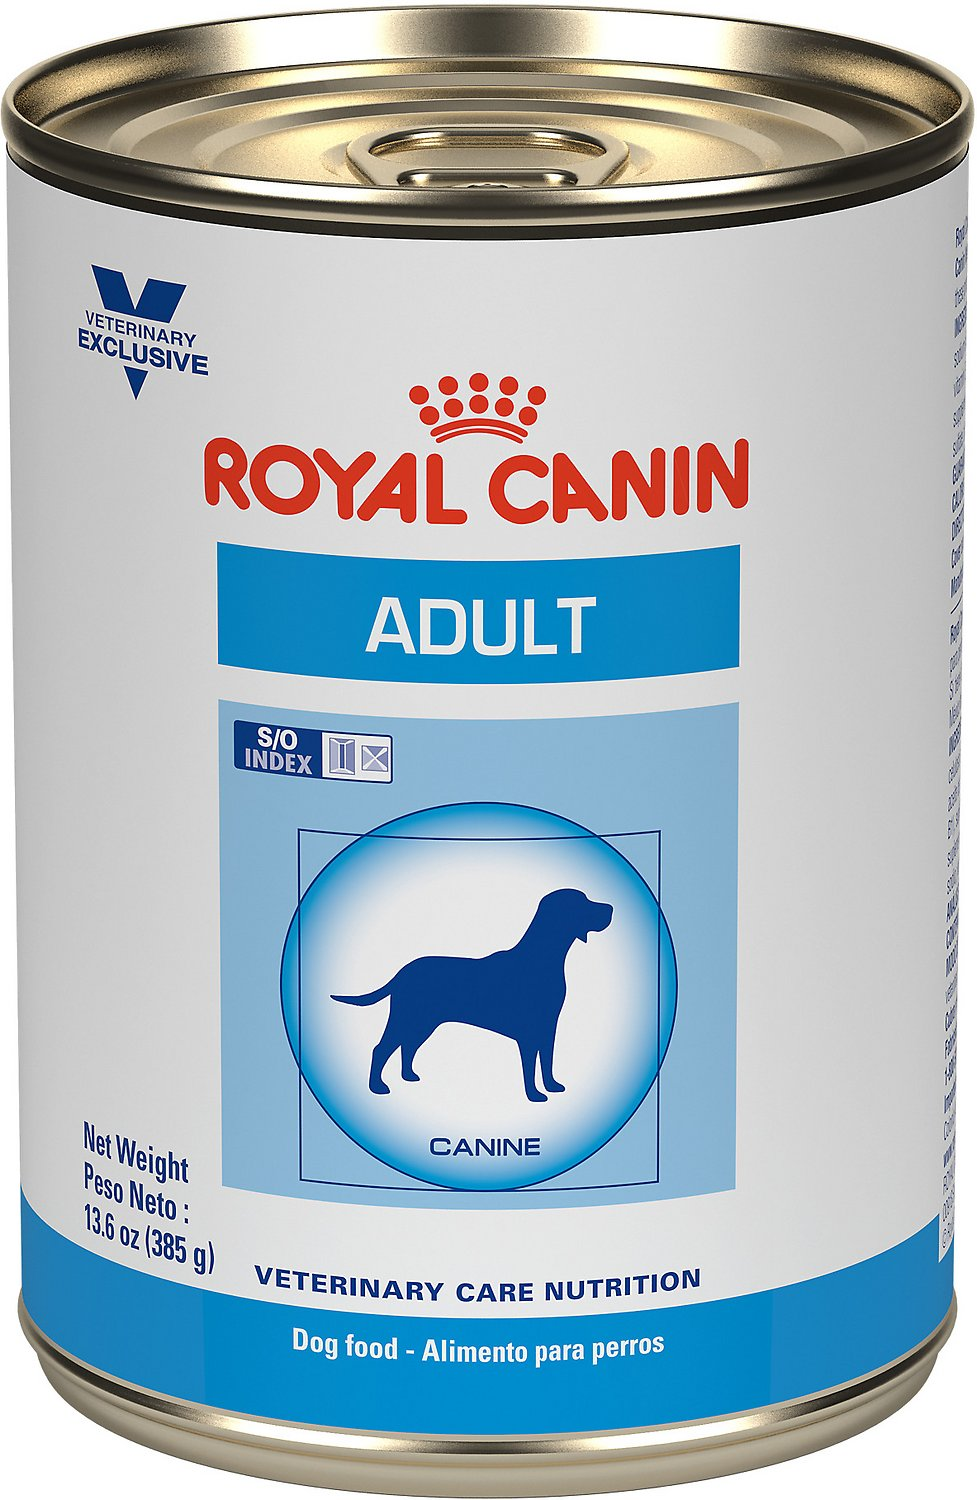 royal canin veterinary diet adult canned dog food 13 6 oz case of 24. Black Bedroom Furniture Sets. Home Design Ideas